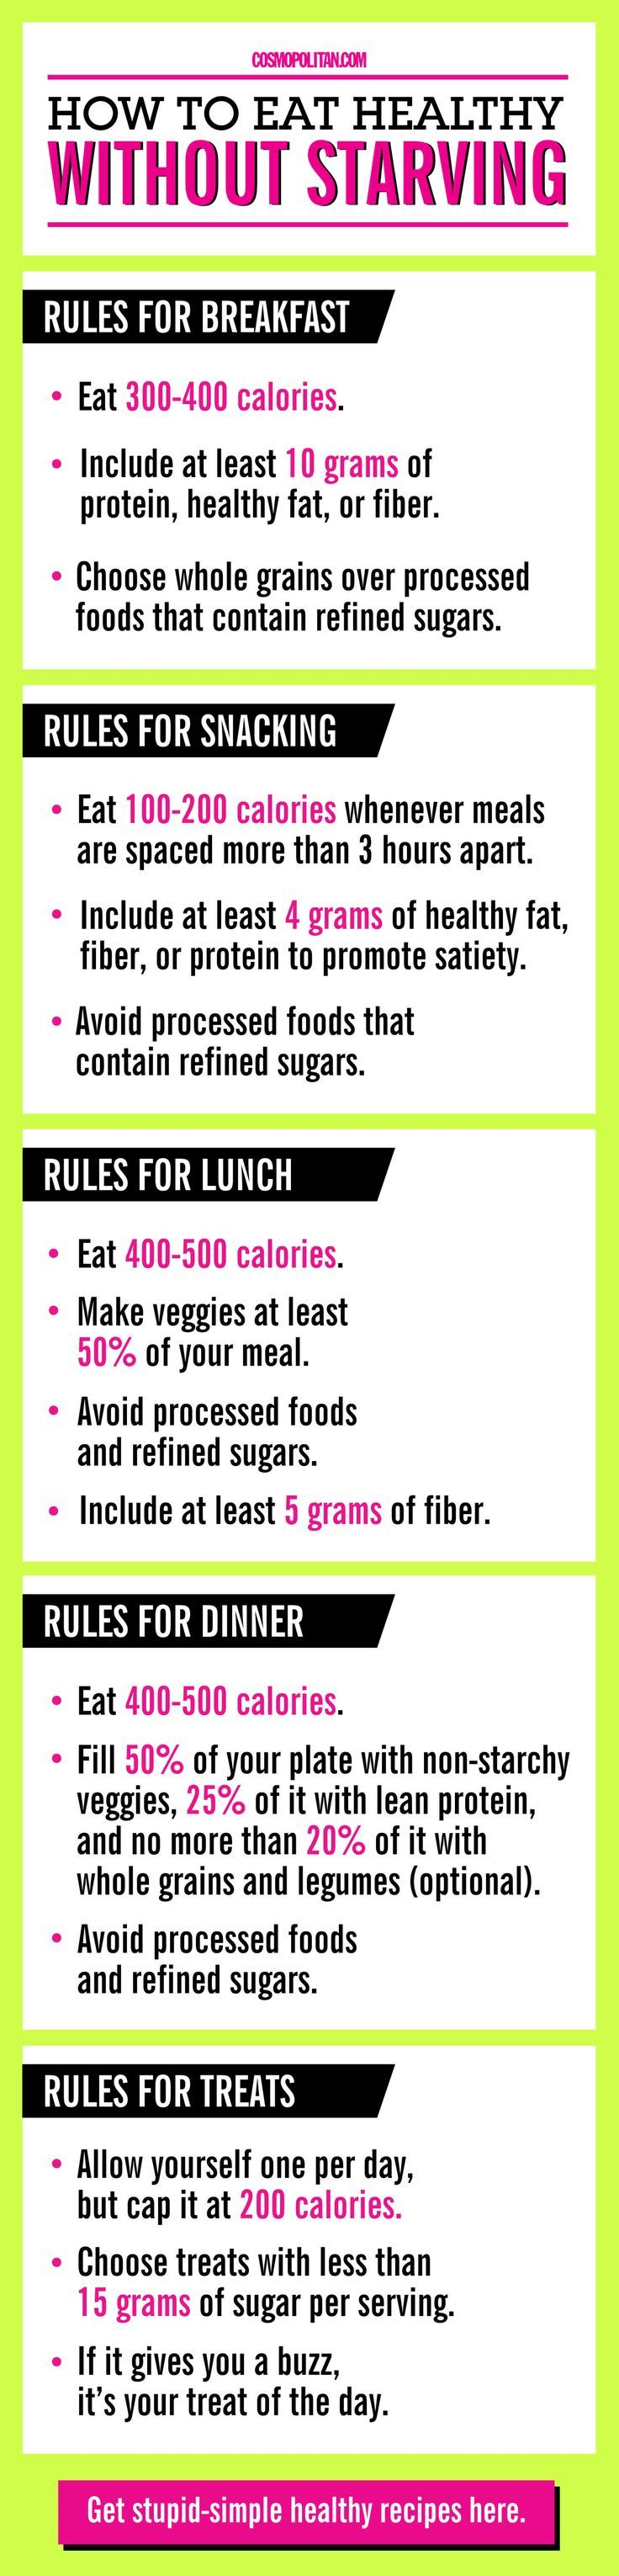 These clean eating tips are perfect for the beginner, or if you've fallen off track. Use an app like My Fitness Pal if you want to track your macros/calories (scheduled via http://www.tailwindapp.com?utm_source=pinterest&utm_medium=twpin&utm_content=post121877335&utm_campaign=scheduler_attribution)